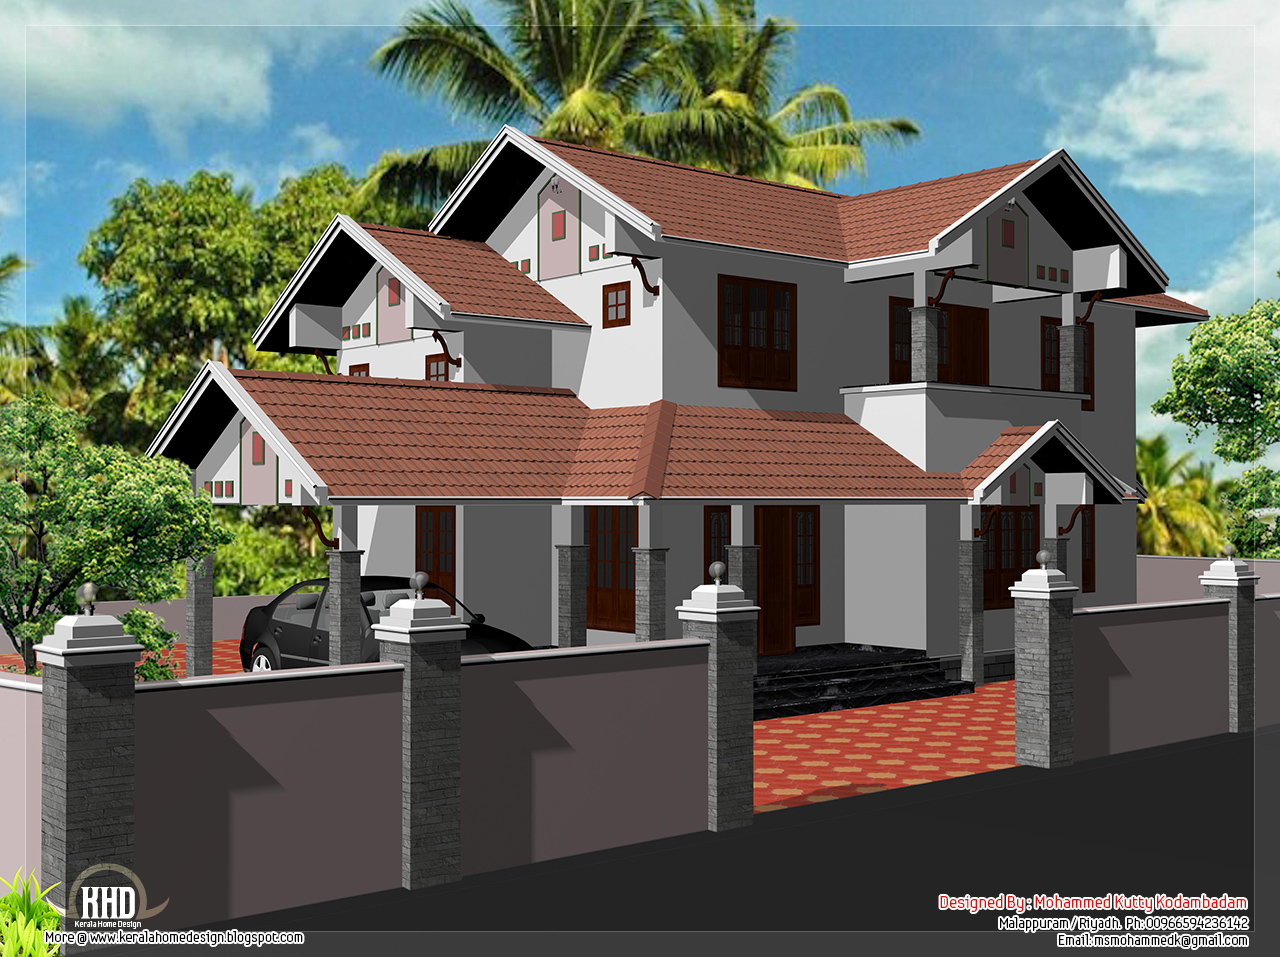 2000 house elevation design house design plans for House plans under 2000 sq ft